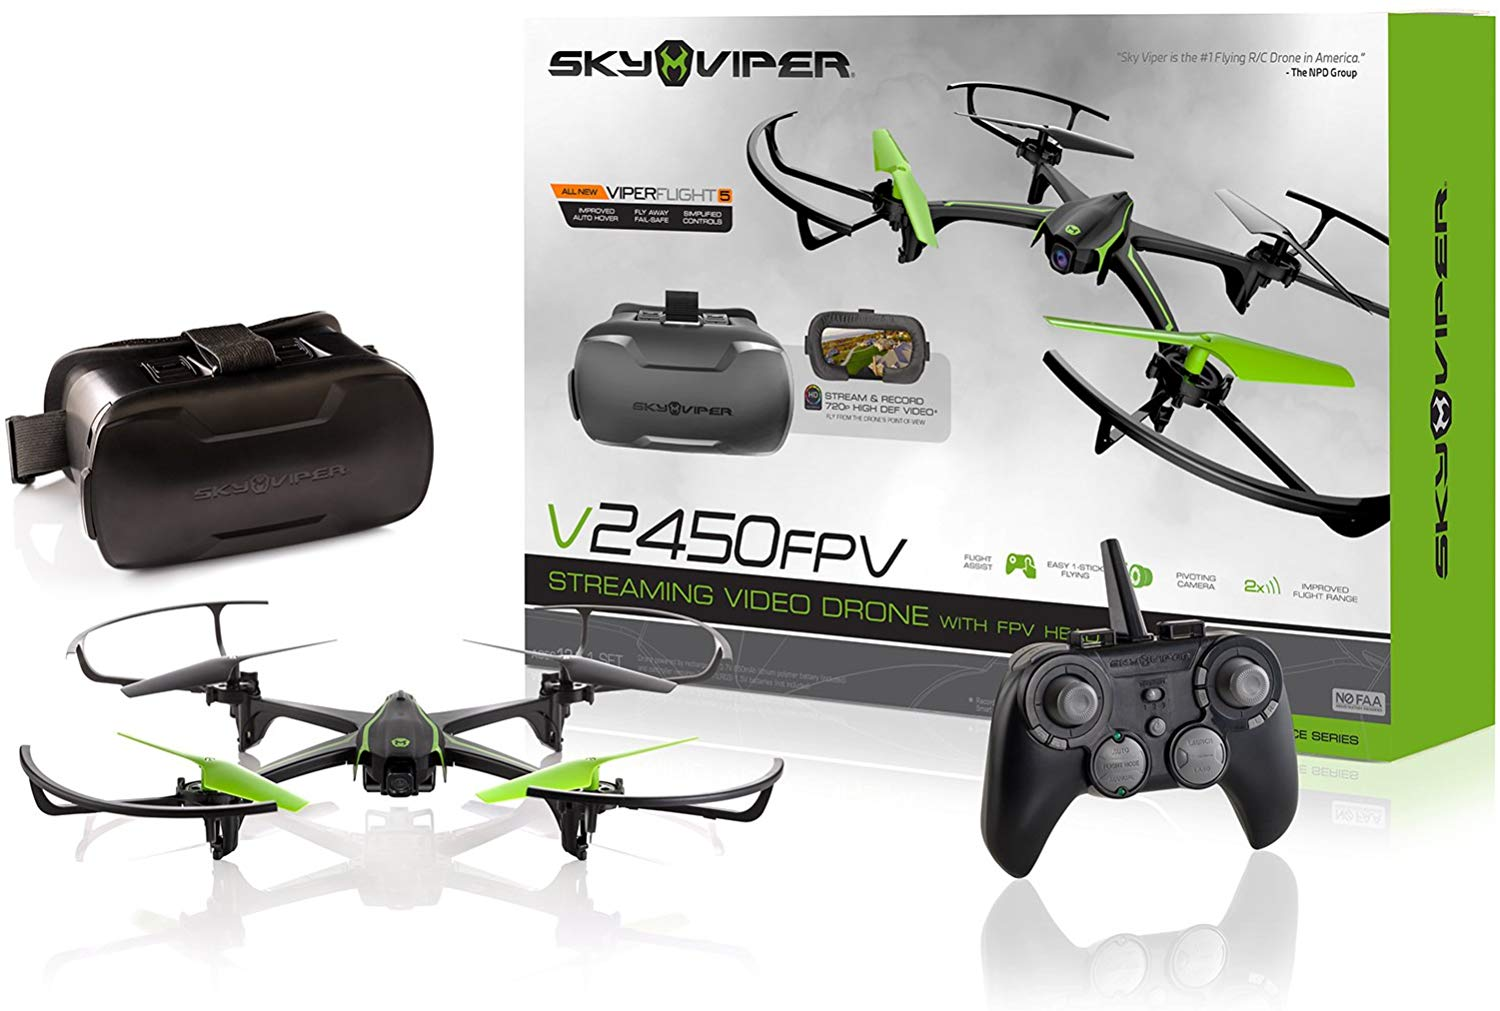 Sky Viper v2450FPV Streaming Drone with FPV Goggles